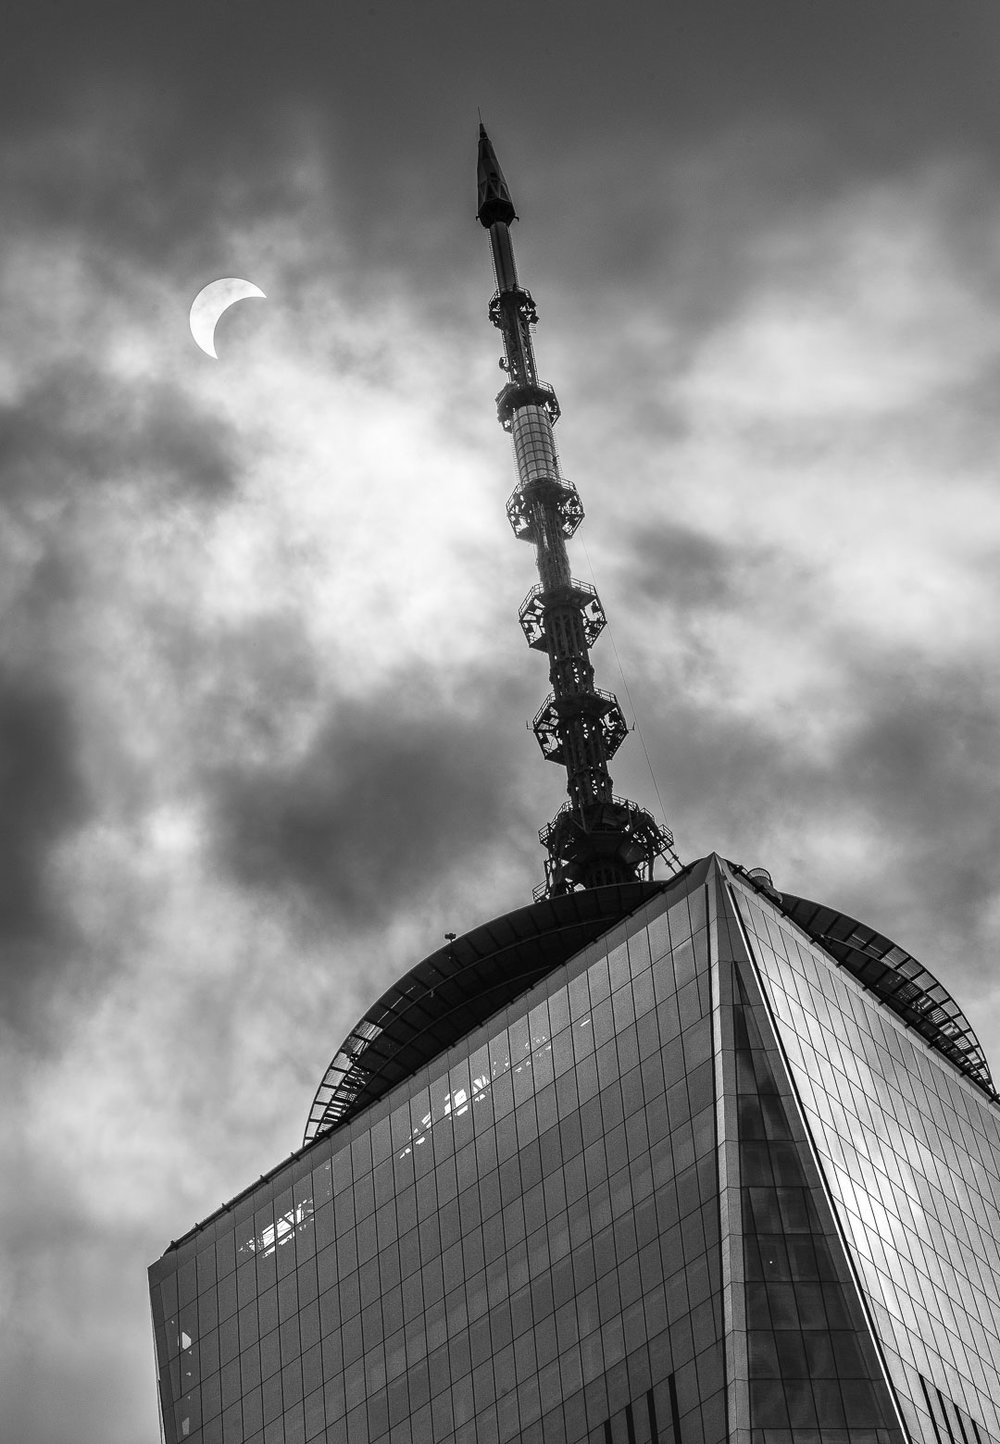 The solar eclipse of August 2017 behind the World Trade Center One building